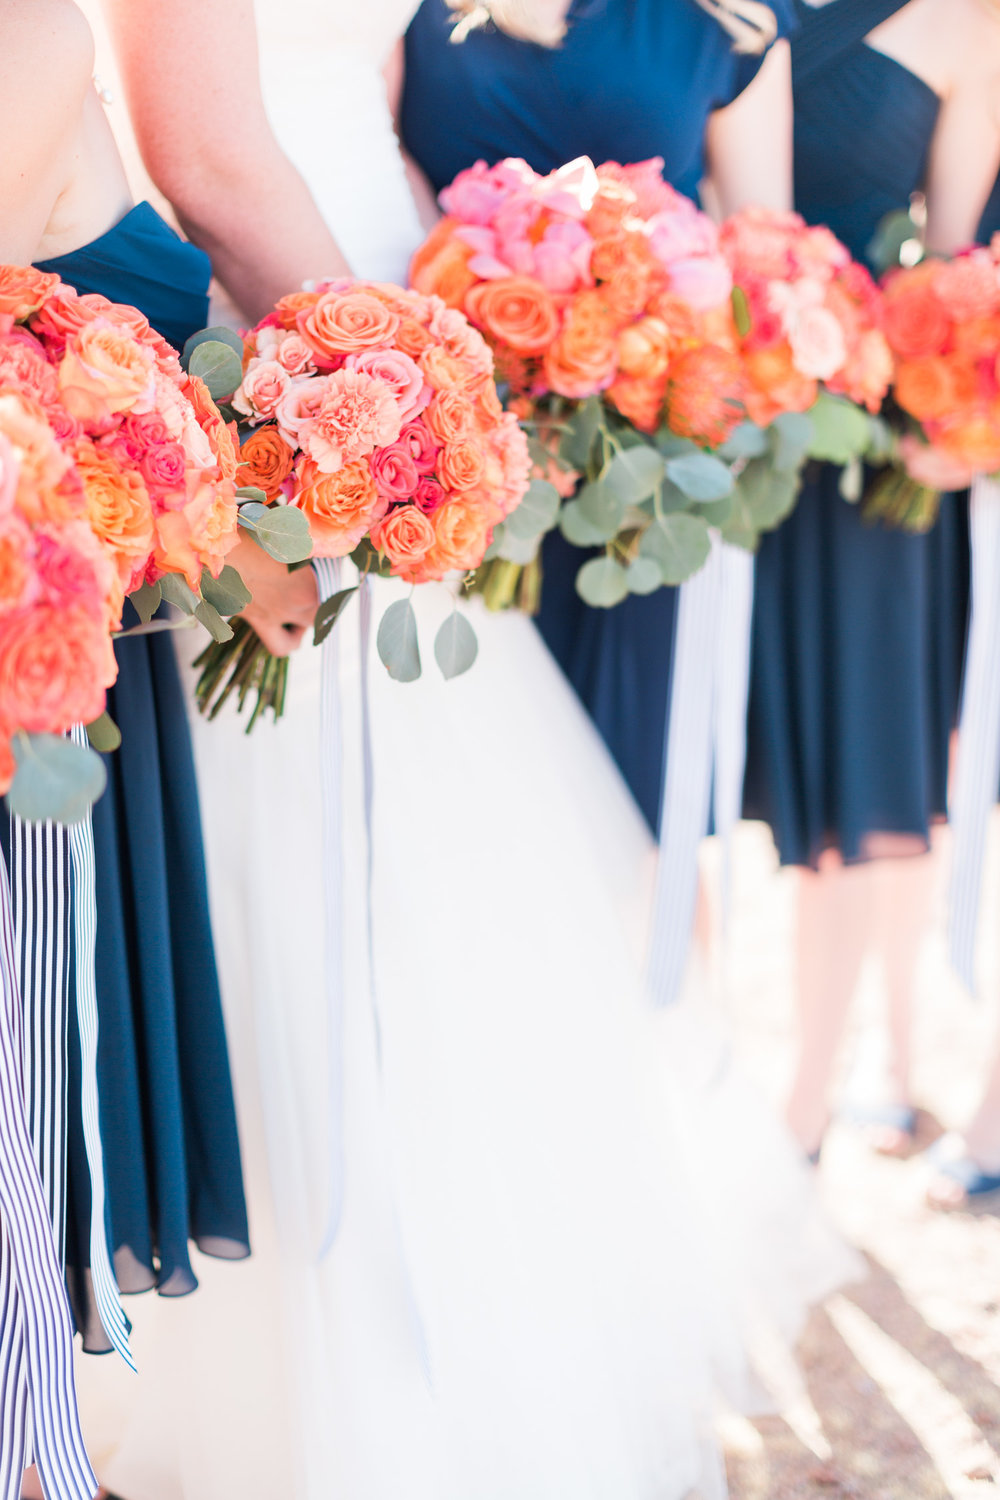 Stunning bouquets with pink peonies, orange and salmon roses with silver dollar eucalyptus.